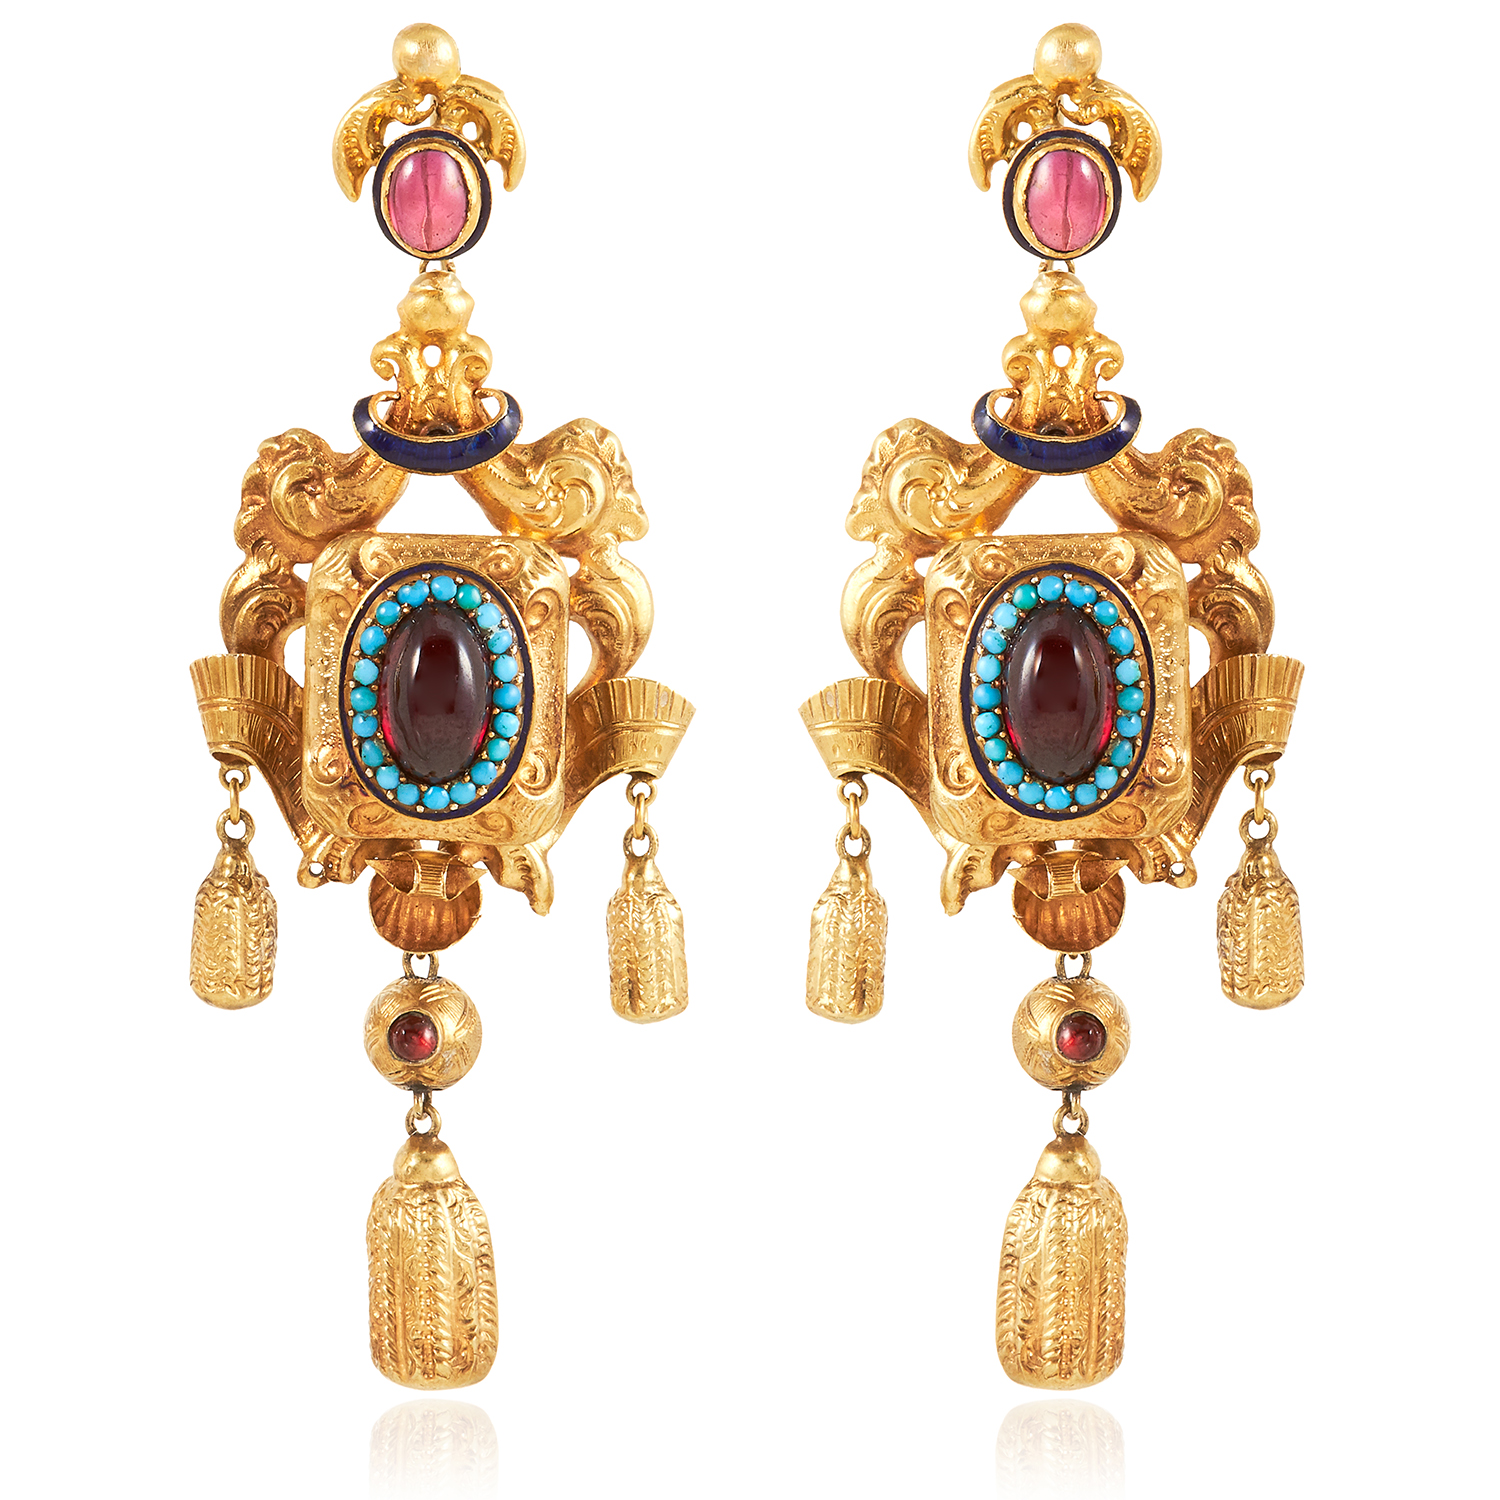 Los 8 - A PAIR OF ANTIQUE GARNET, TURQUOISE AND ENAMEL EARRINGS in high carat yellow gold, each set with